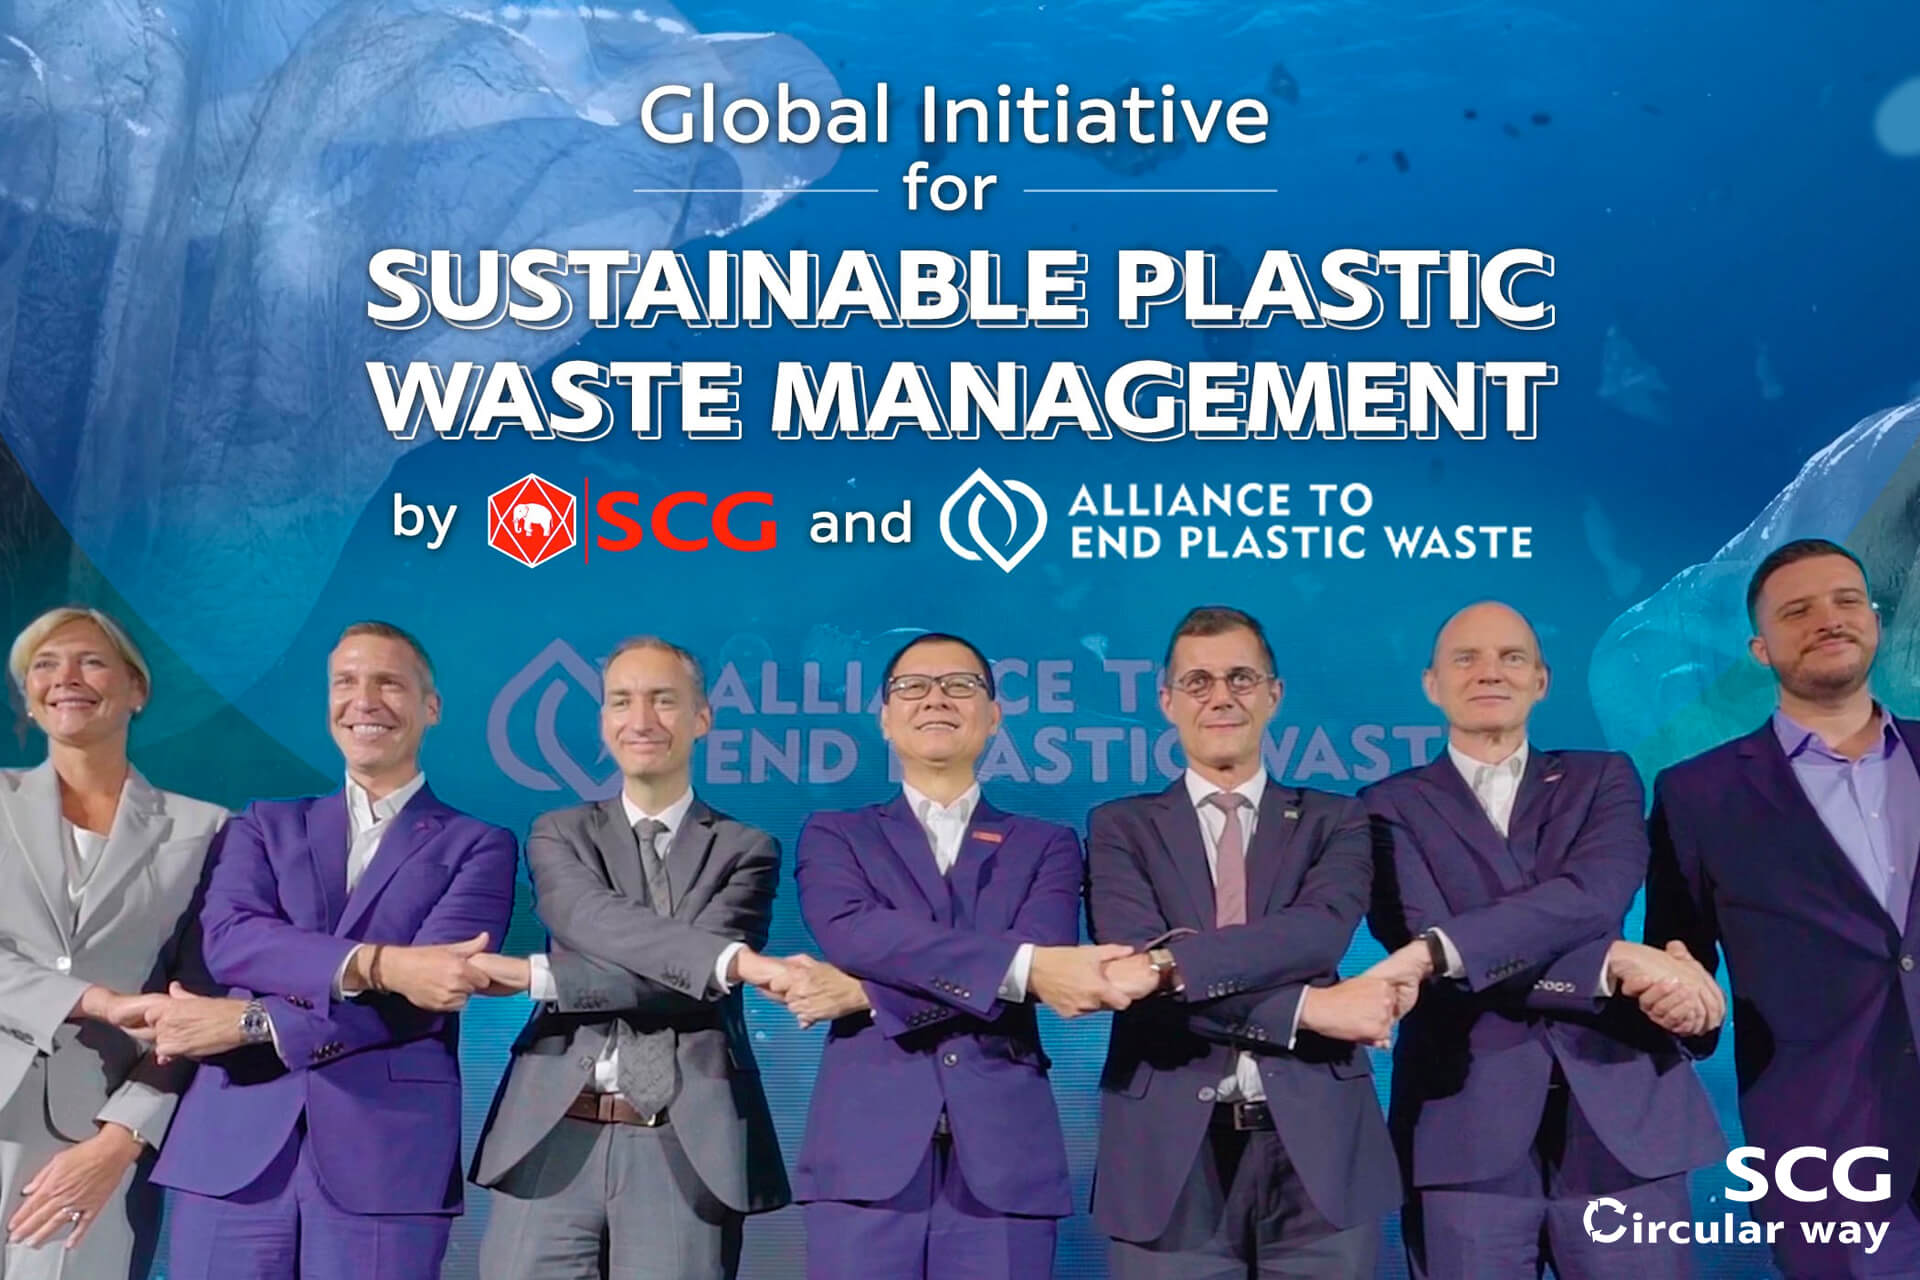 Global Initiative for Sustainable Plastic Waste Management by SCG and AEPW